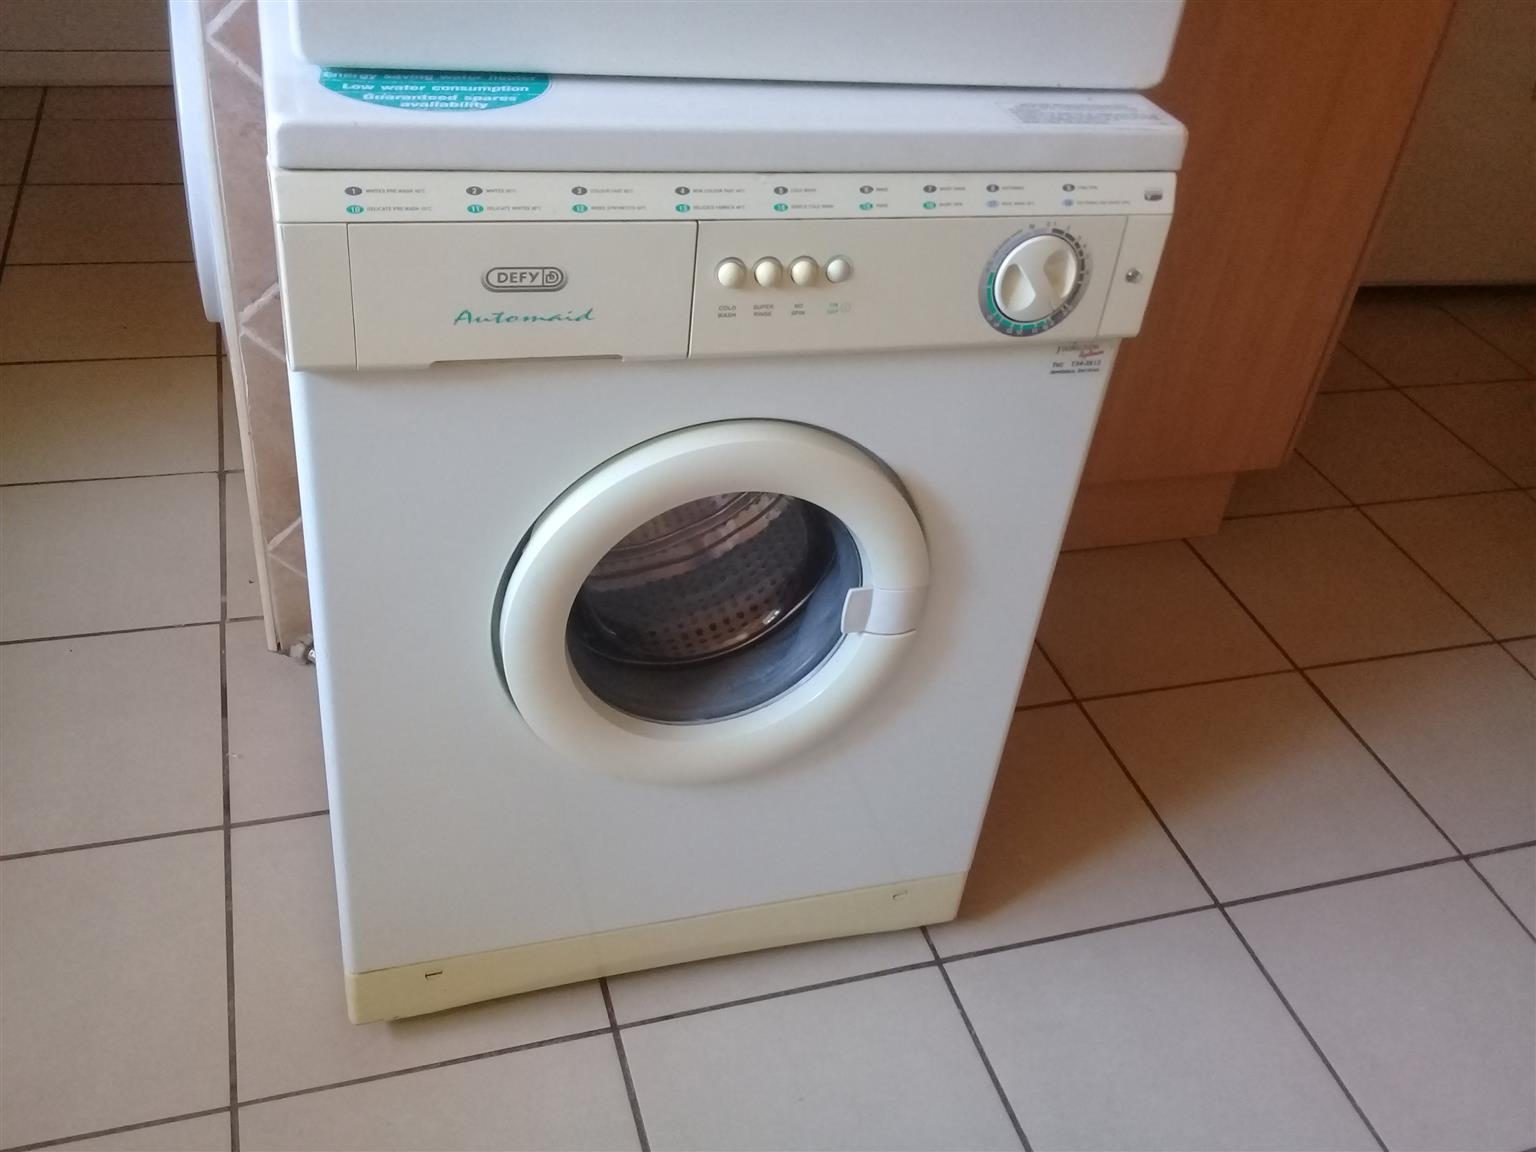 defy washing machine and tumble dryer.